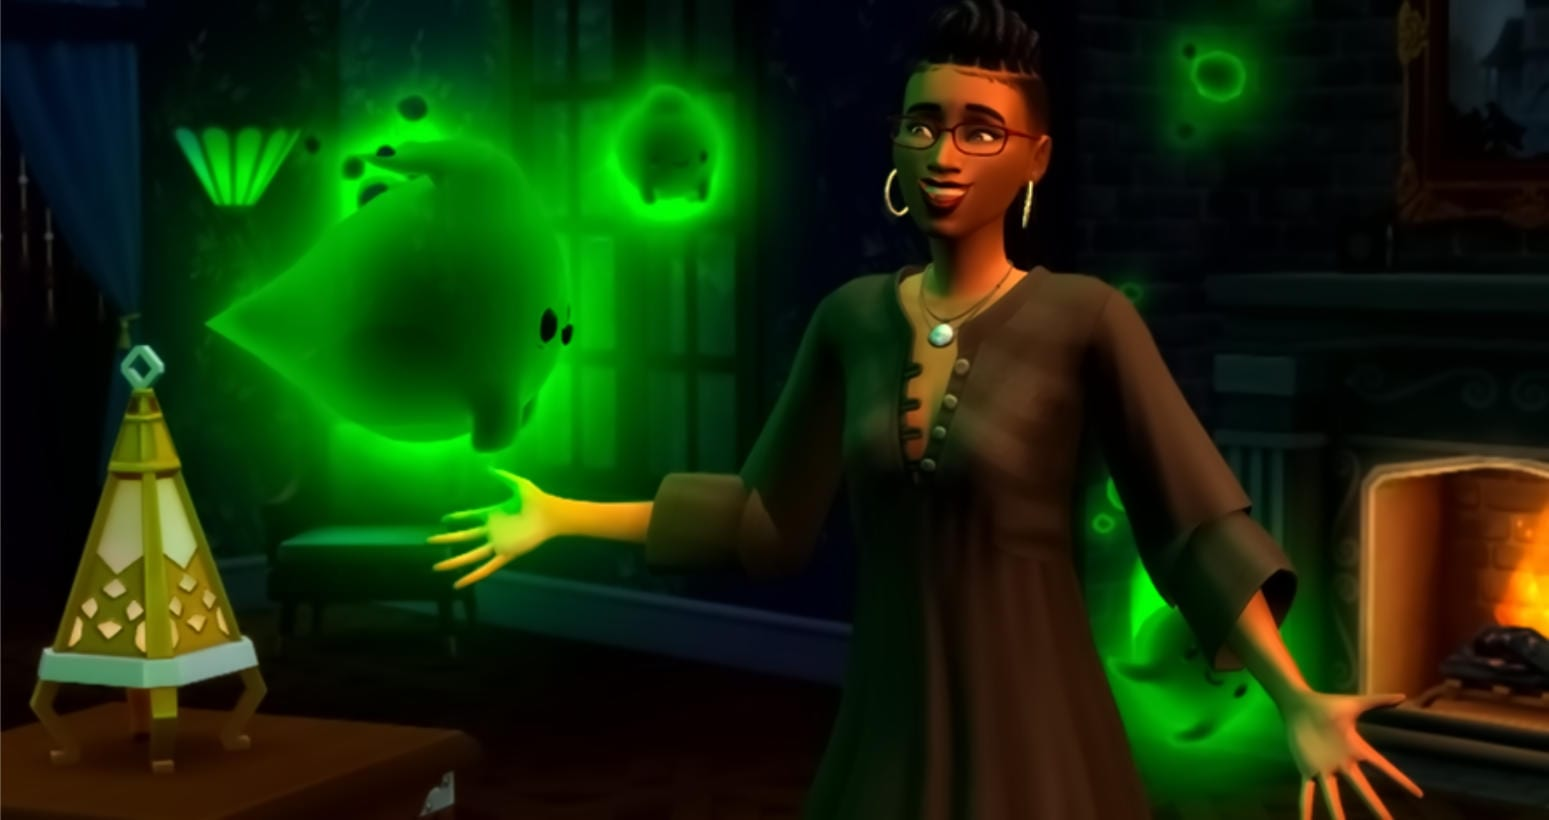 The Sims 4: Paranormal Critic Review